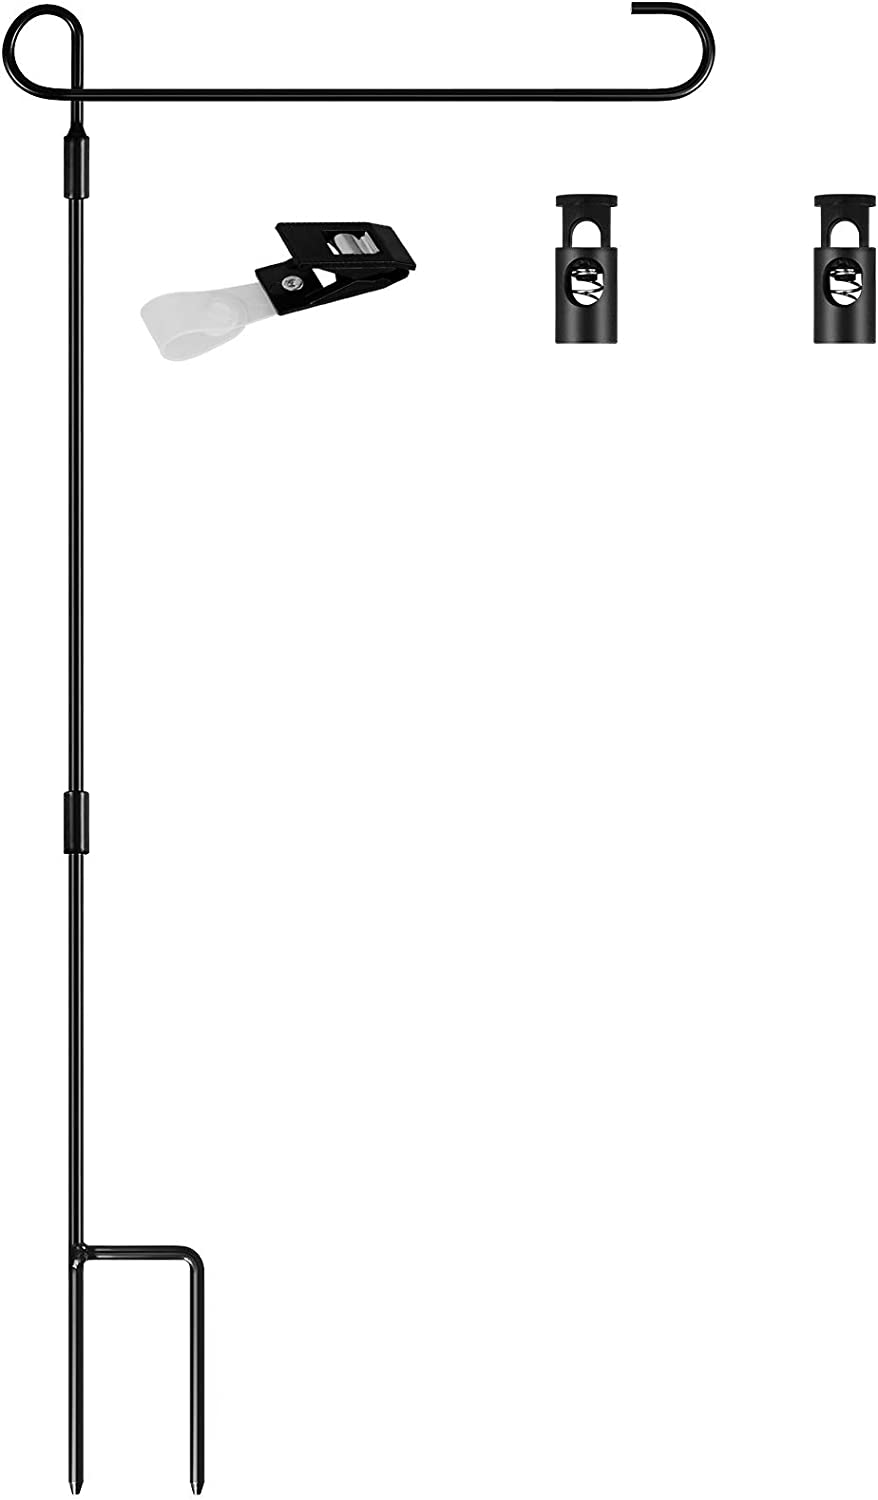 Coindivi Garden Flag Holder Stand, Yard Flagpole, Hitch Flag Pole for Outdoor The American Flag, House, Lawn, Stainless Steel with Powder-Coated, 1 Anti-Wind Clip and 2 Spring Stoppers 34.3'' x 15''